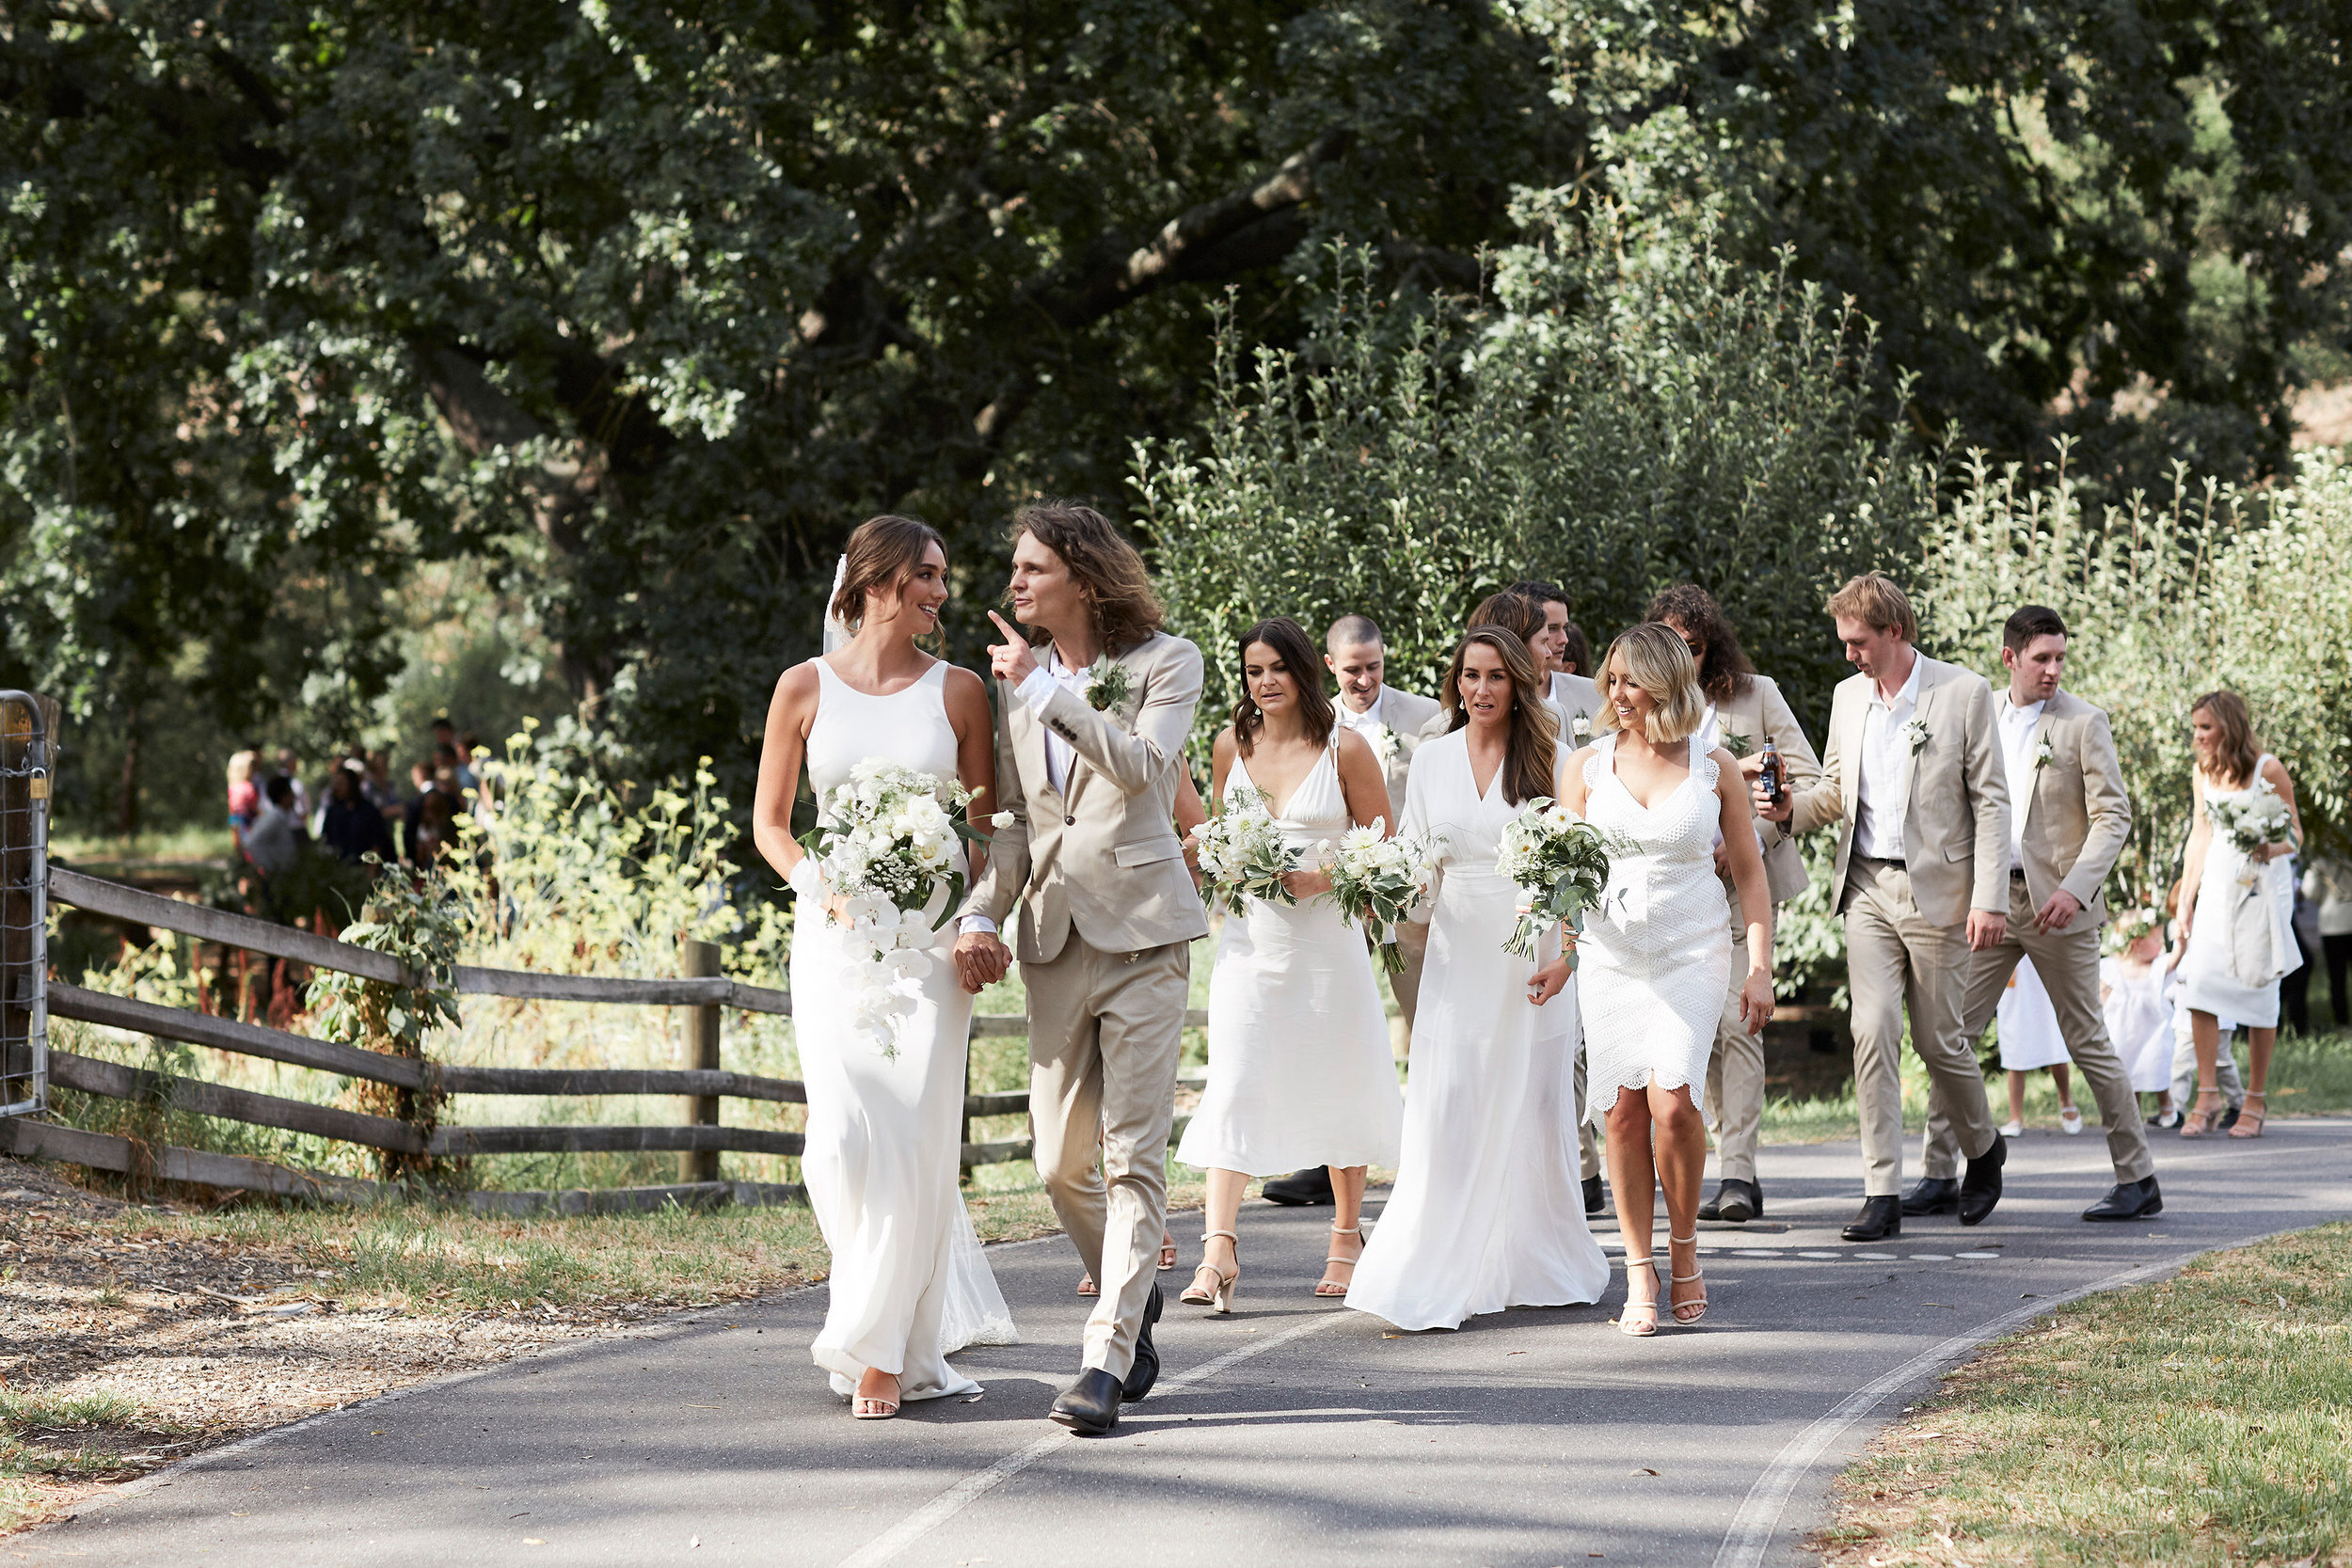 Pip & Stu's Wedding featuring a Fiona Clare wedding dress | Love Find Co. Bridal Directory